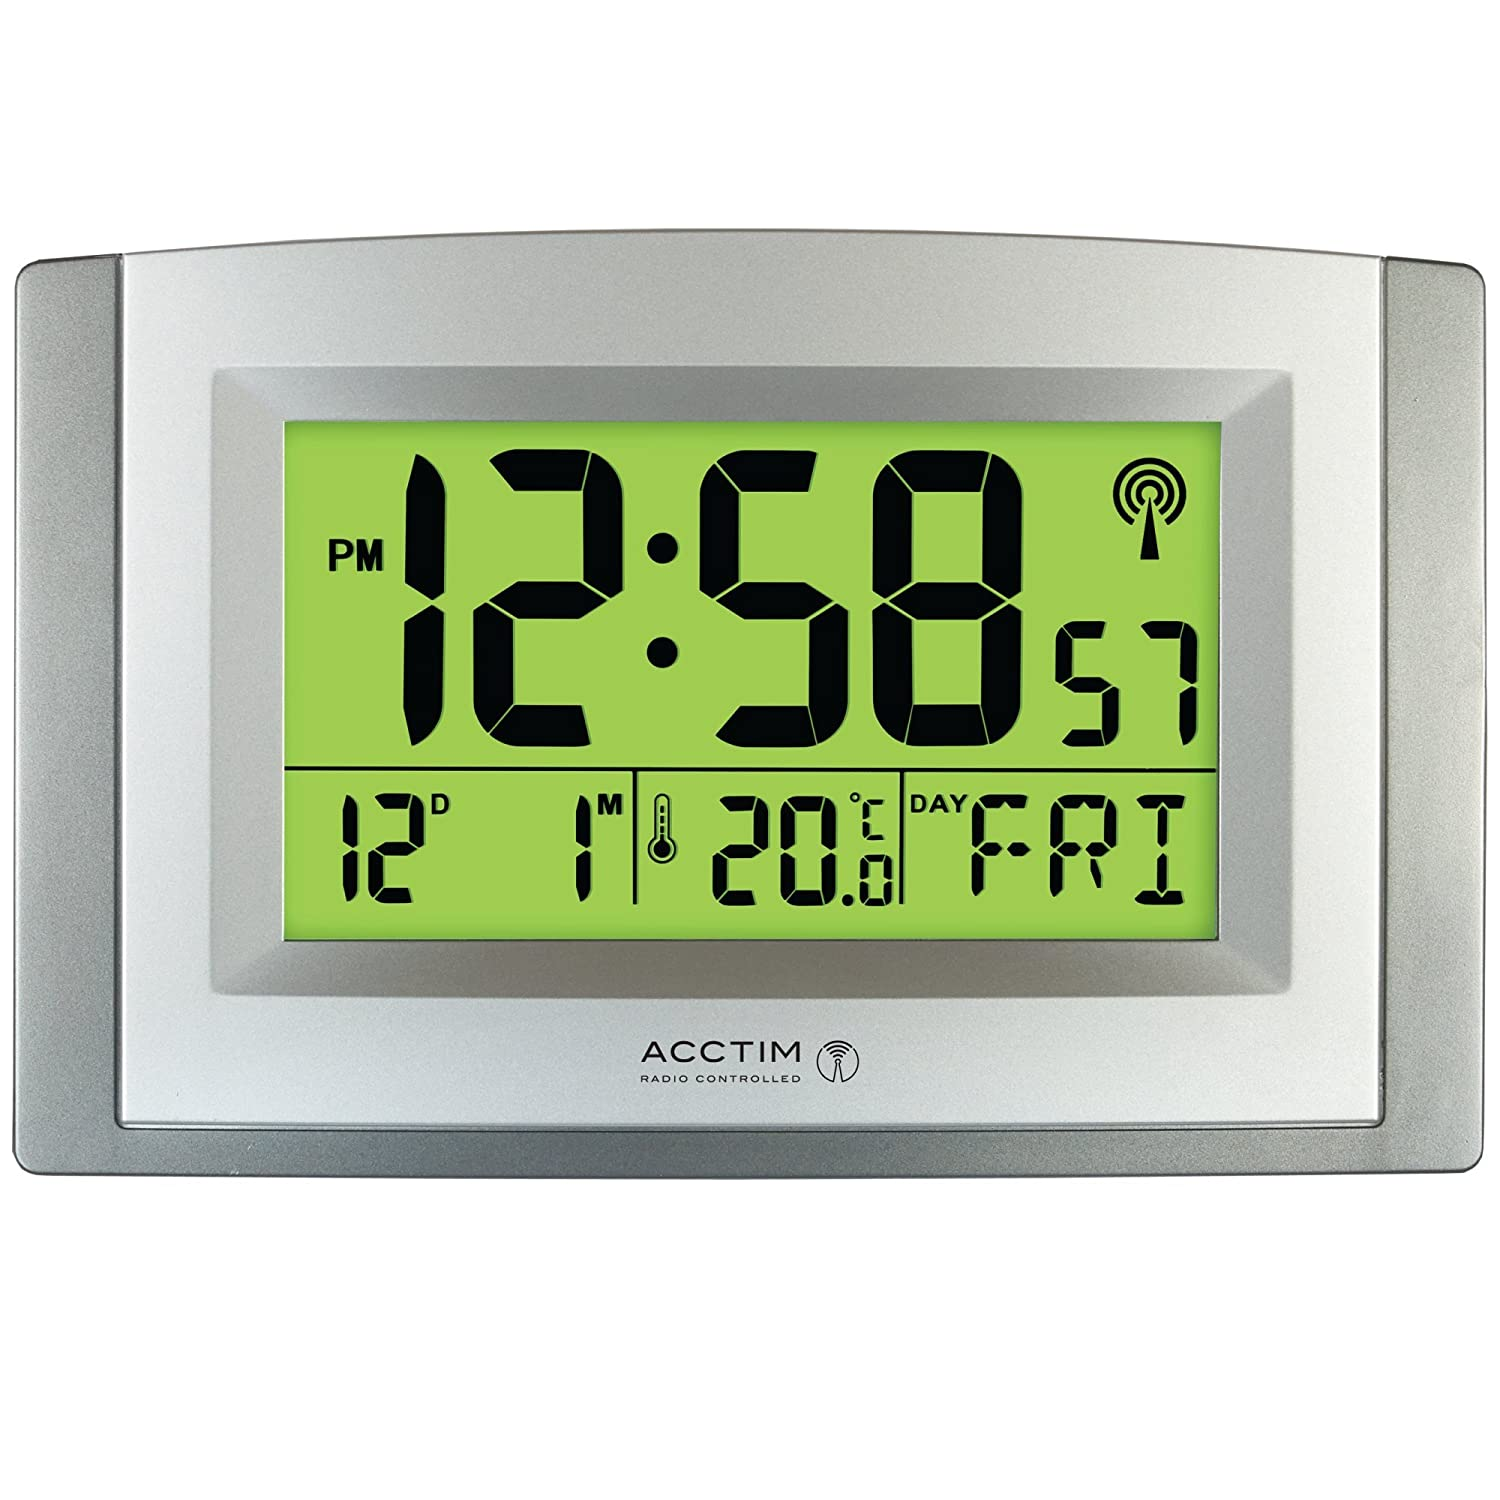 Acctim Stratus Smartlite Wall/Desk Clock, Silver CK4057 Clocks Decorative_Accessories Radio Controlled